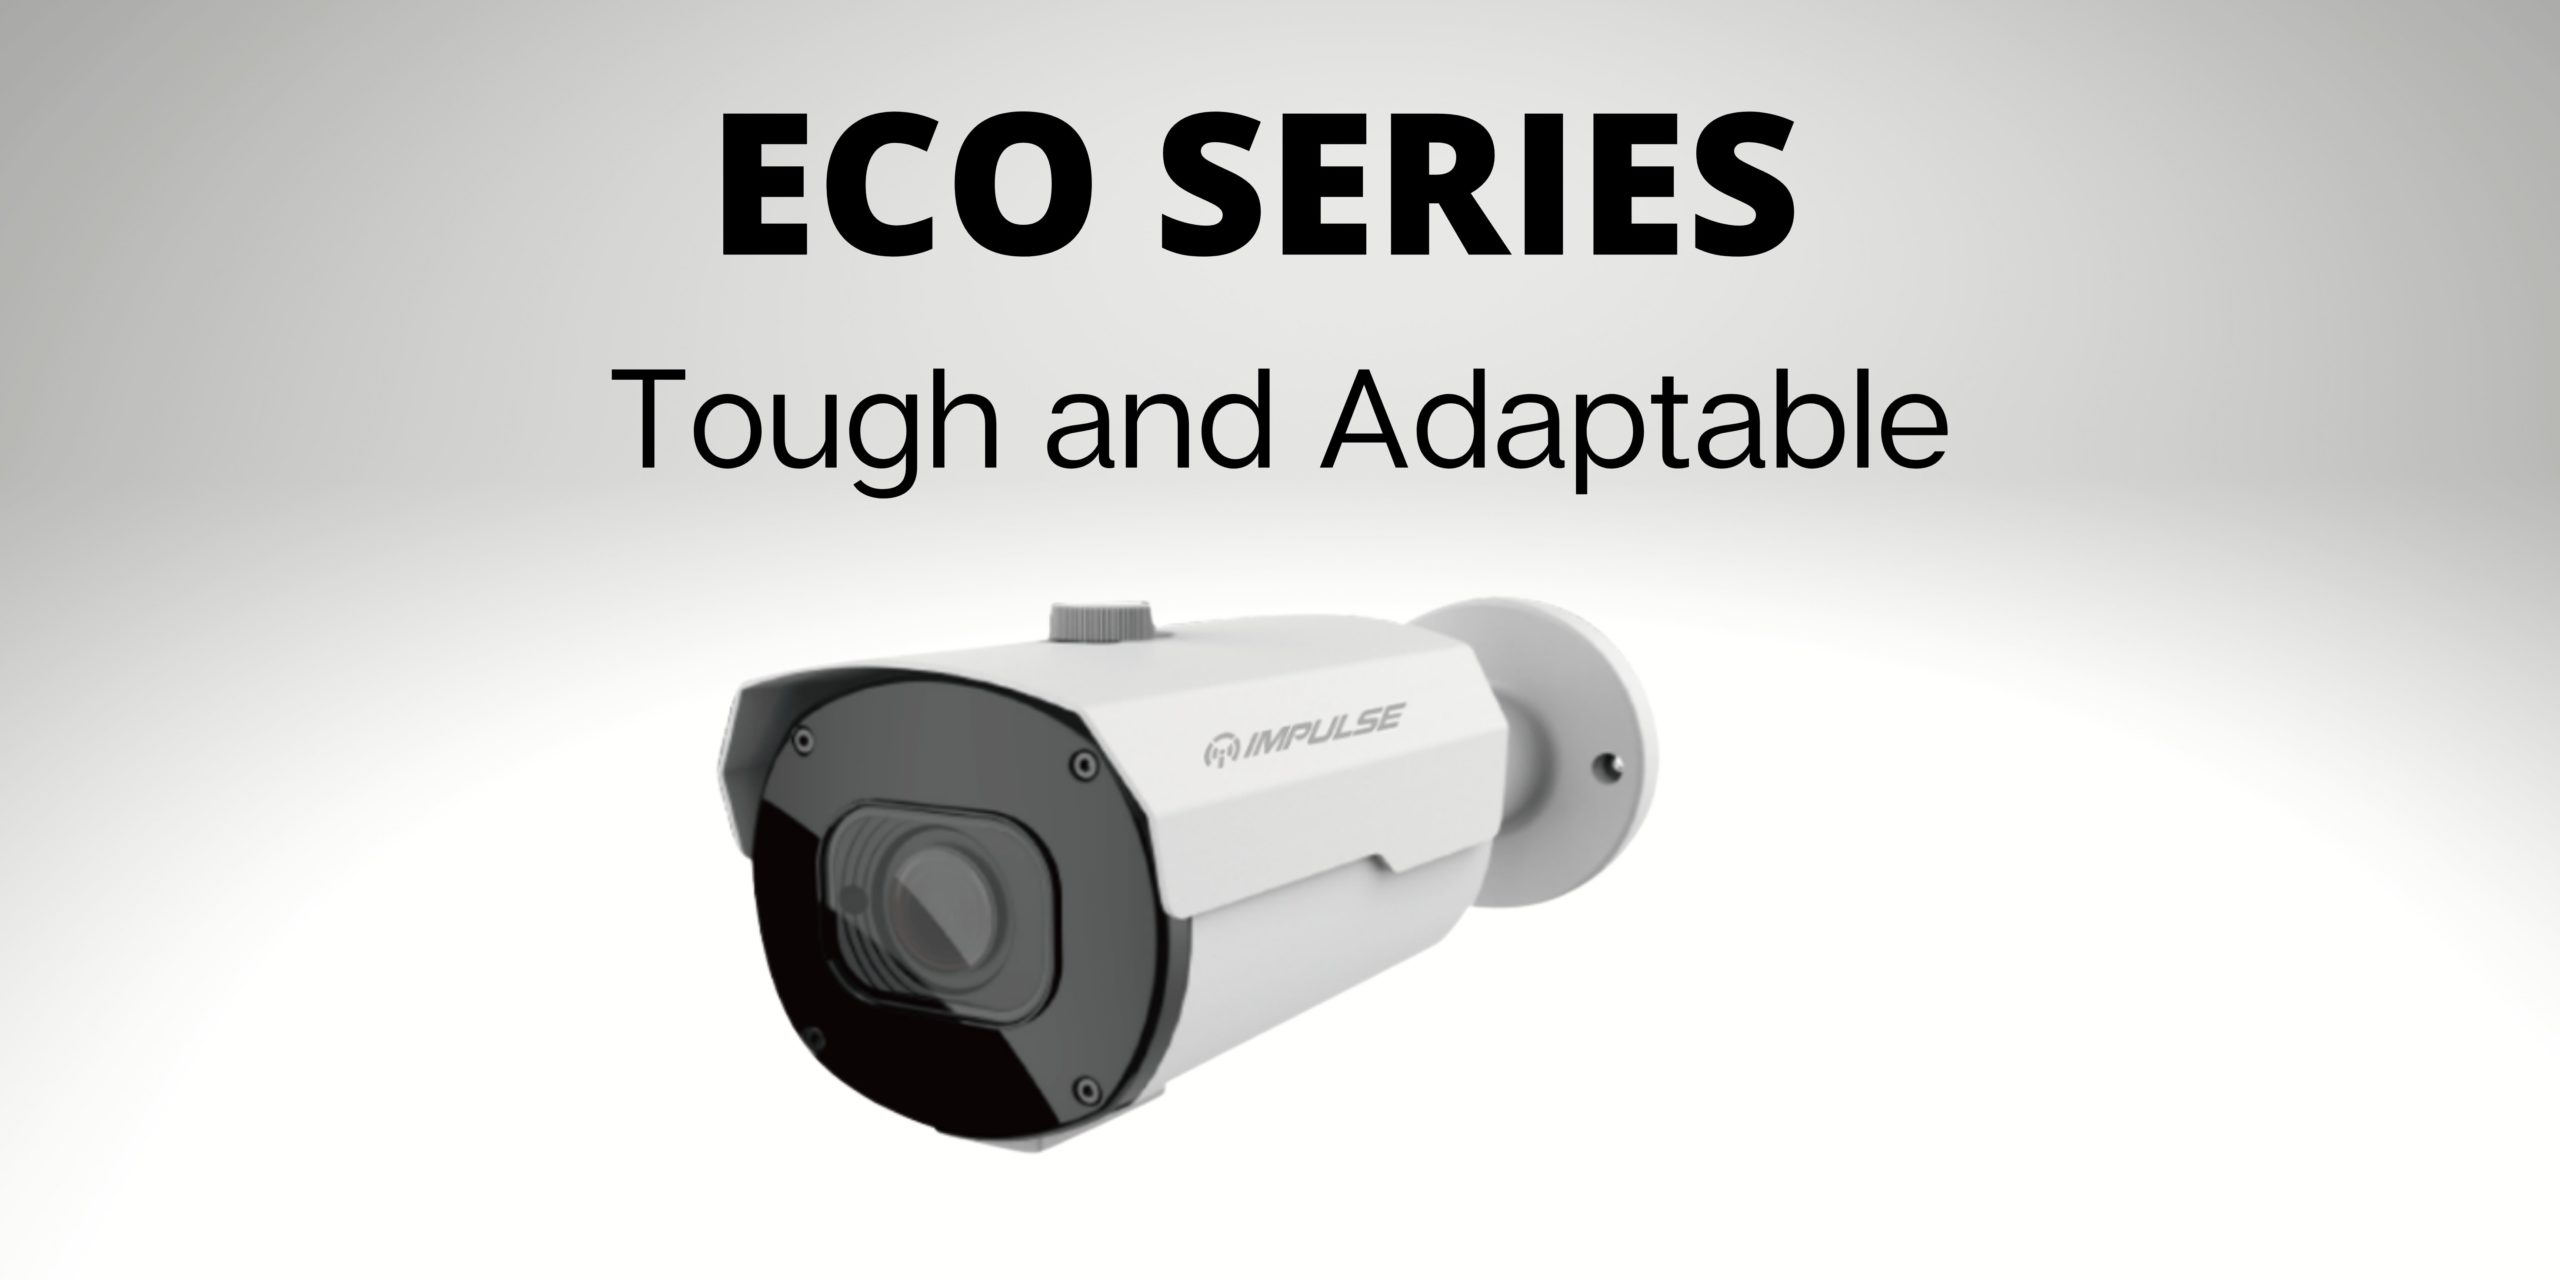 Impulse CCTV & PoE Switching l ECO Series - Tough and Adaptable